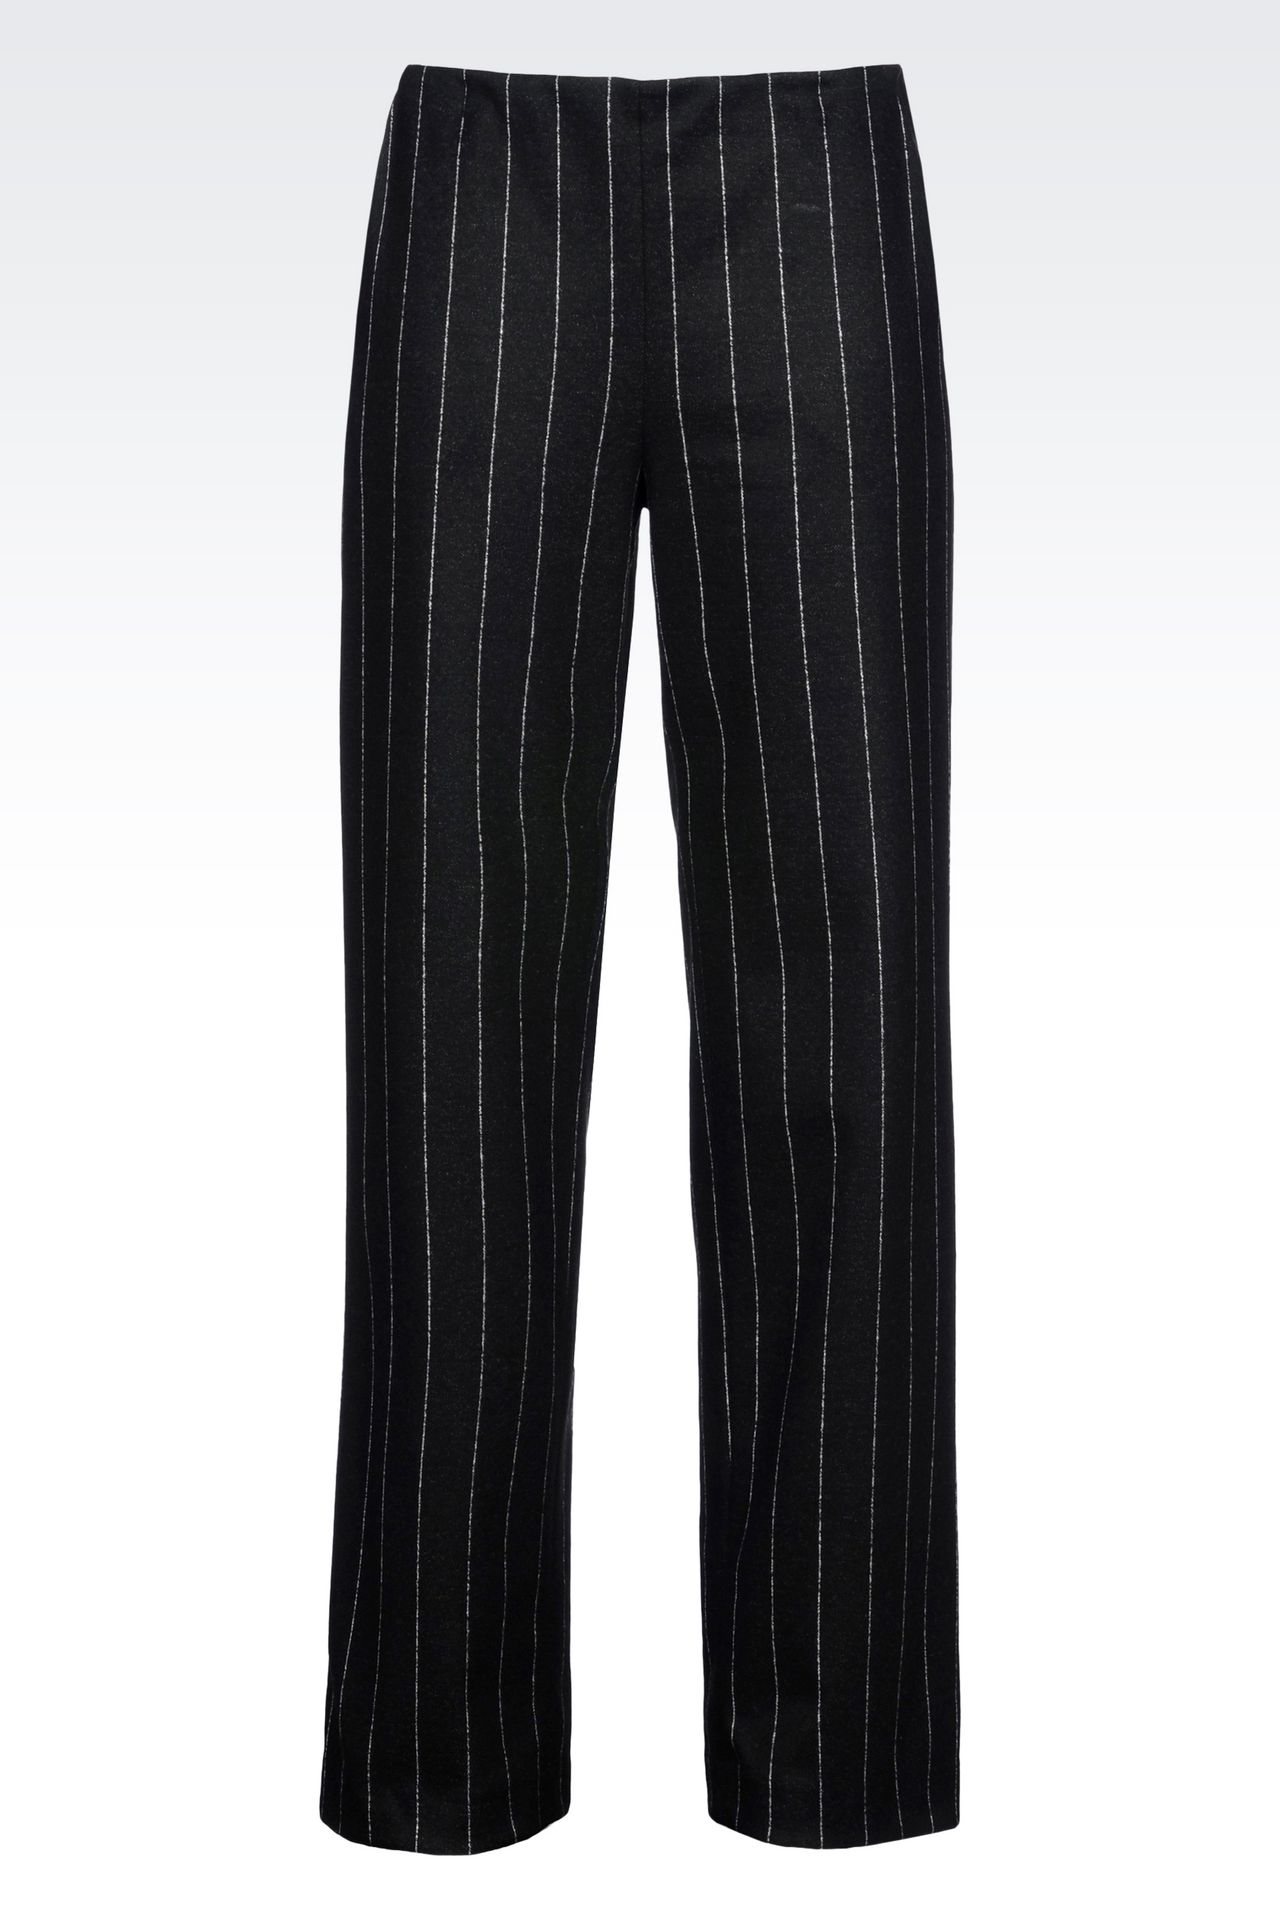 10mins.ml offers black pinstripe pants products. About 10% of these are women's trousers & pants, 5% are men's trousers & pants, and 1% are baseball & softball wear. A wide variety of black pinstripe pants options are available to you, such as free samples.